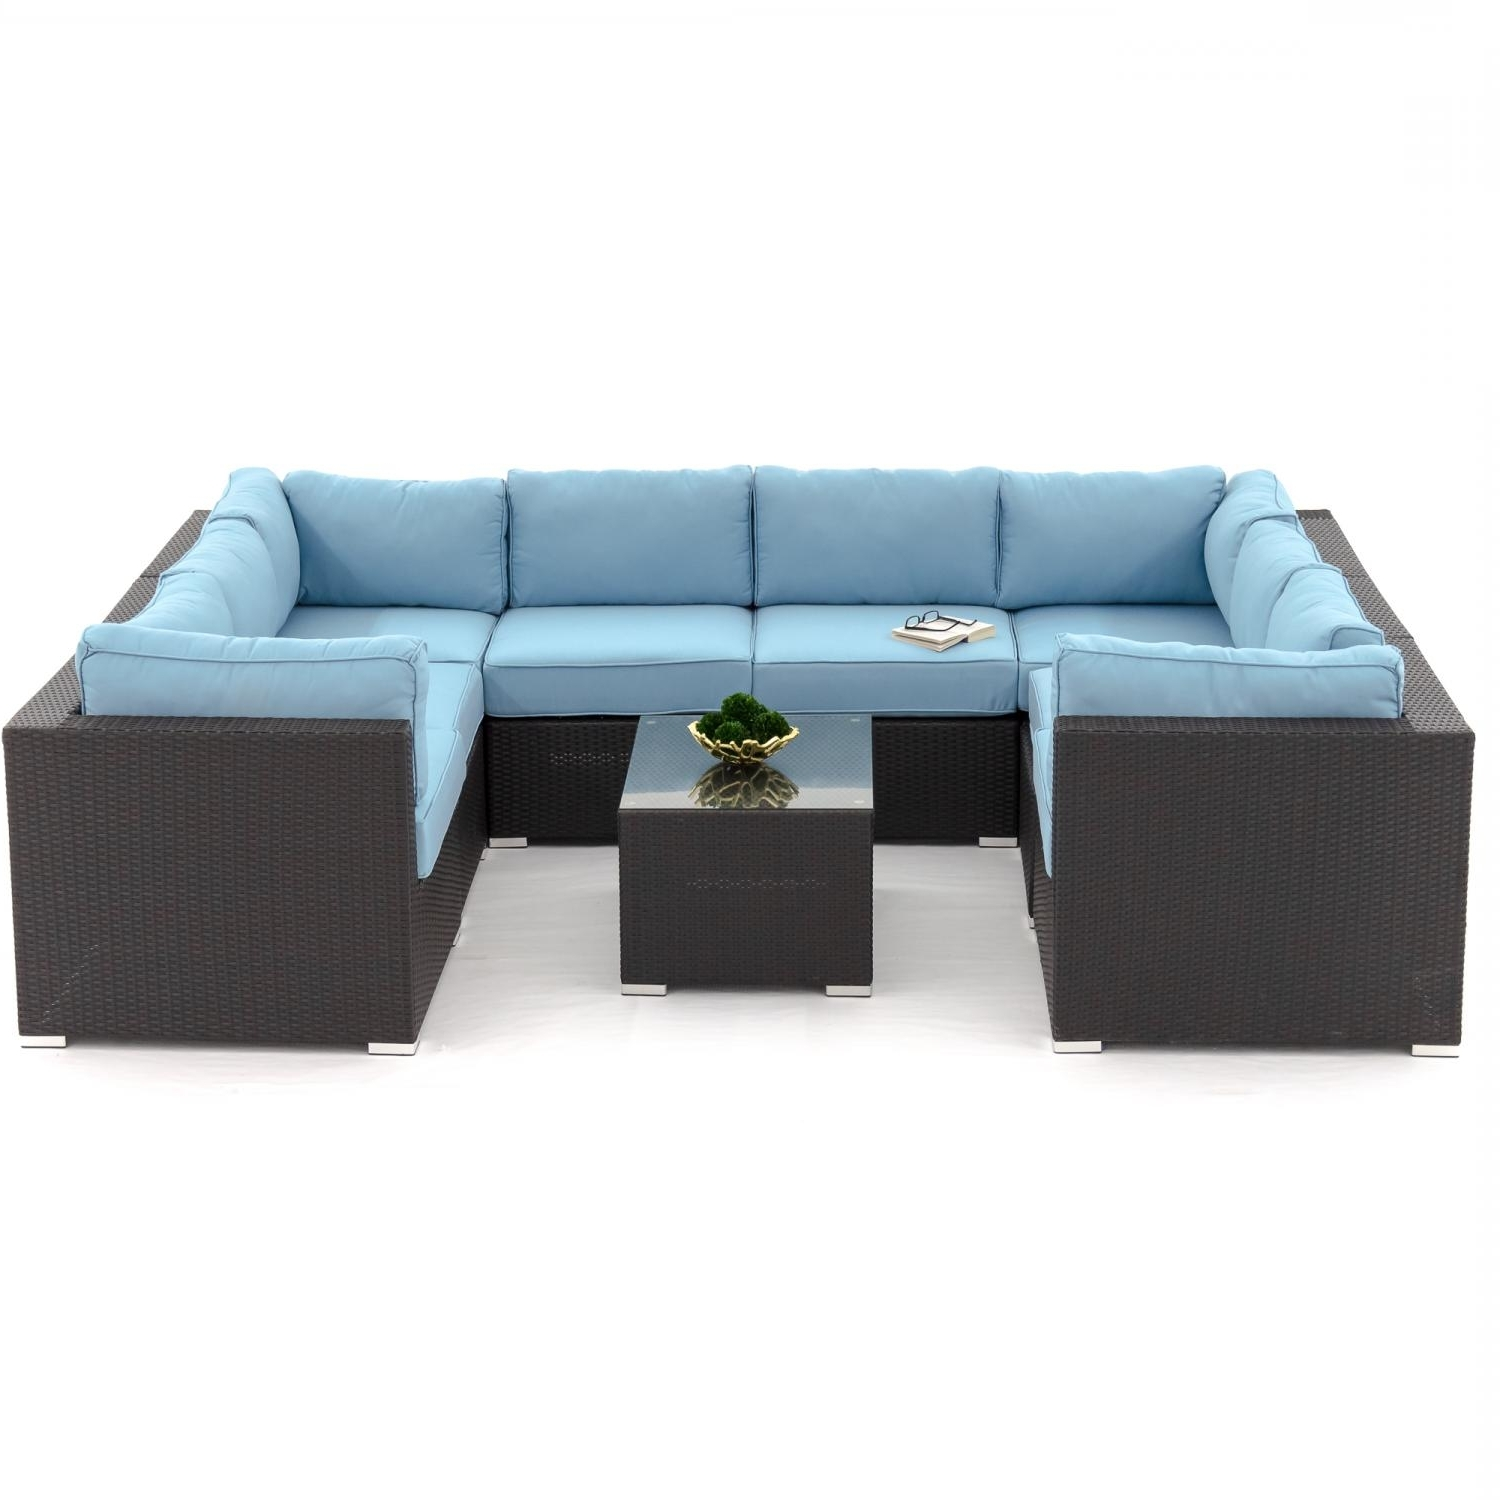 Widely Used Blue U Shaped Sectionals Intended For U Shaped Outdoor Sectional – Outdoor Designs (View 18 of 20)